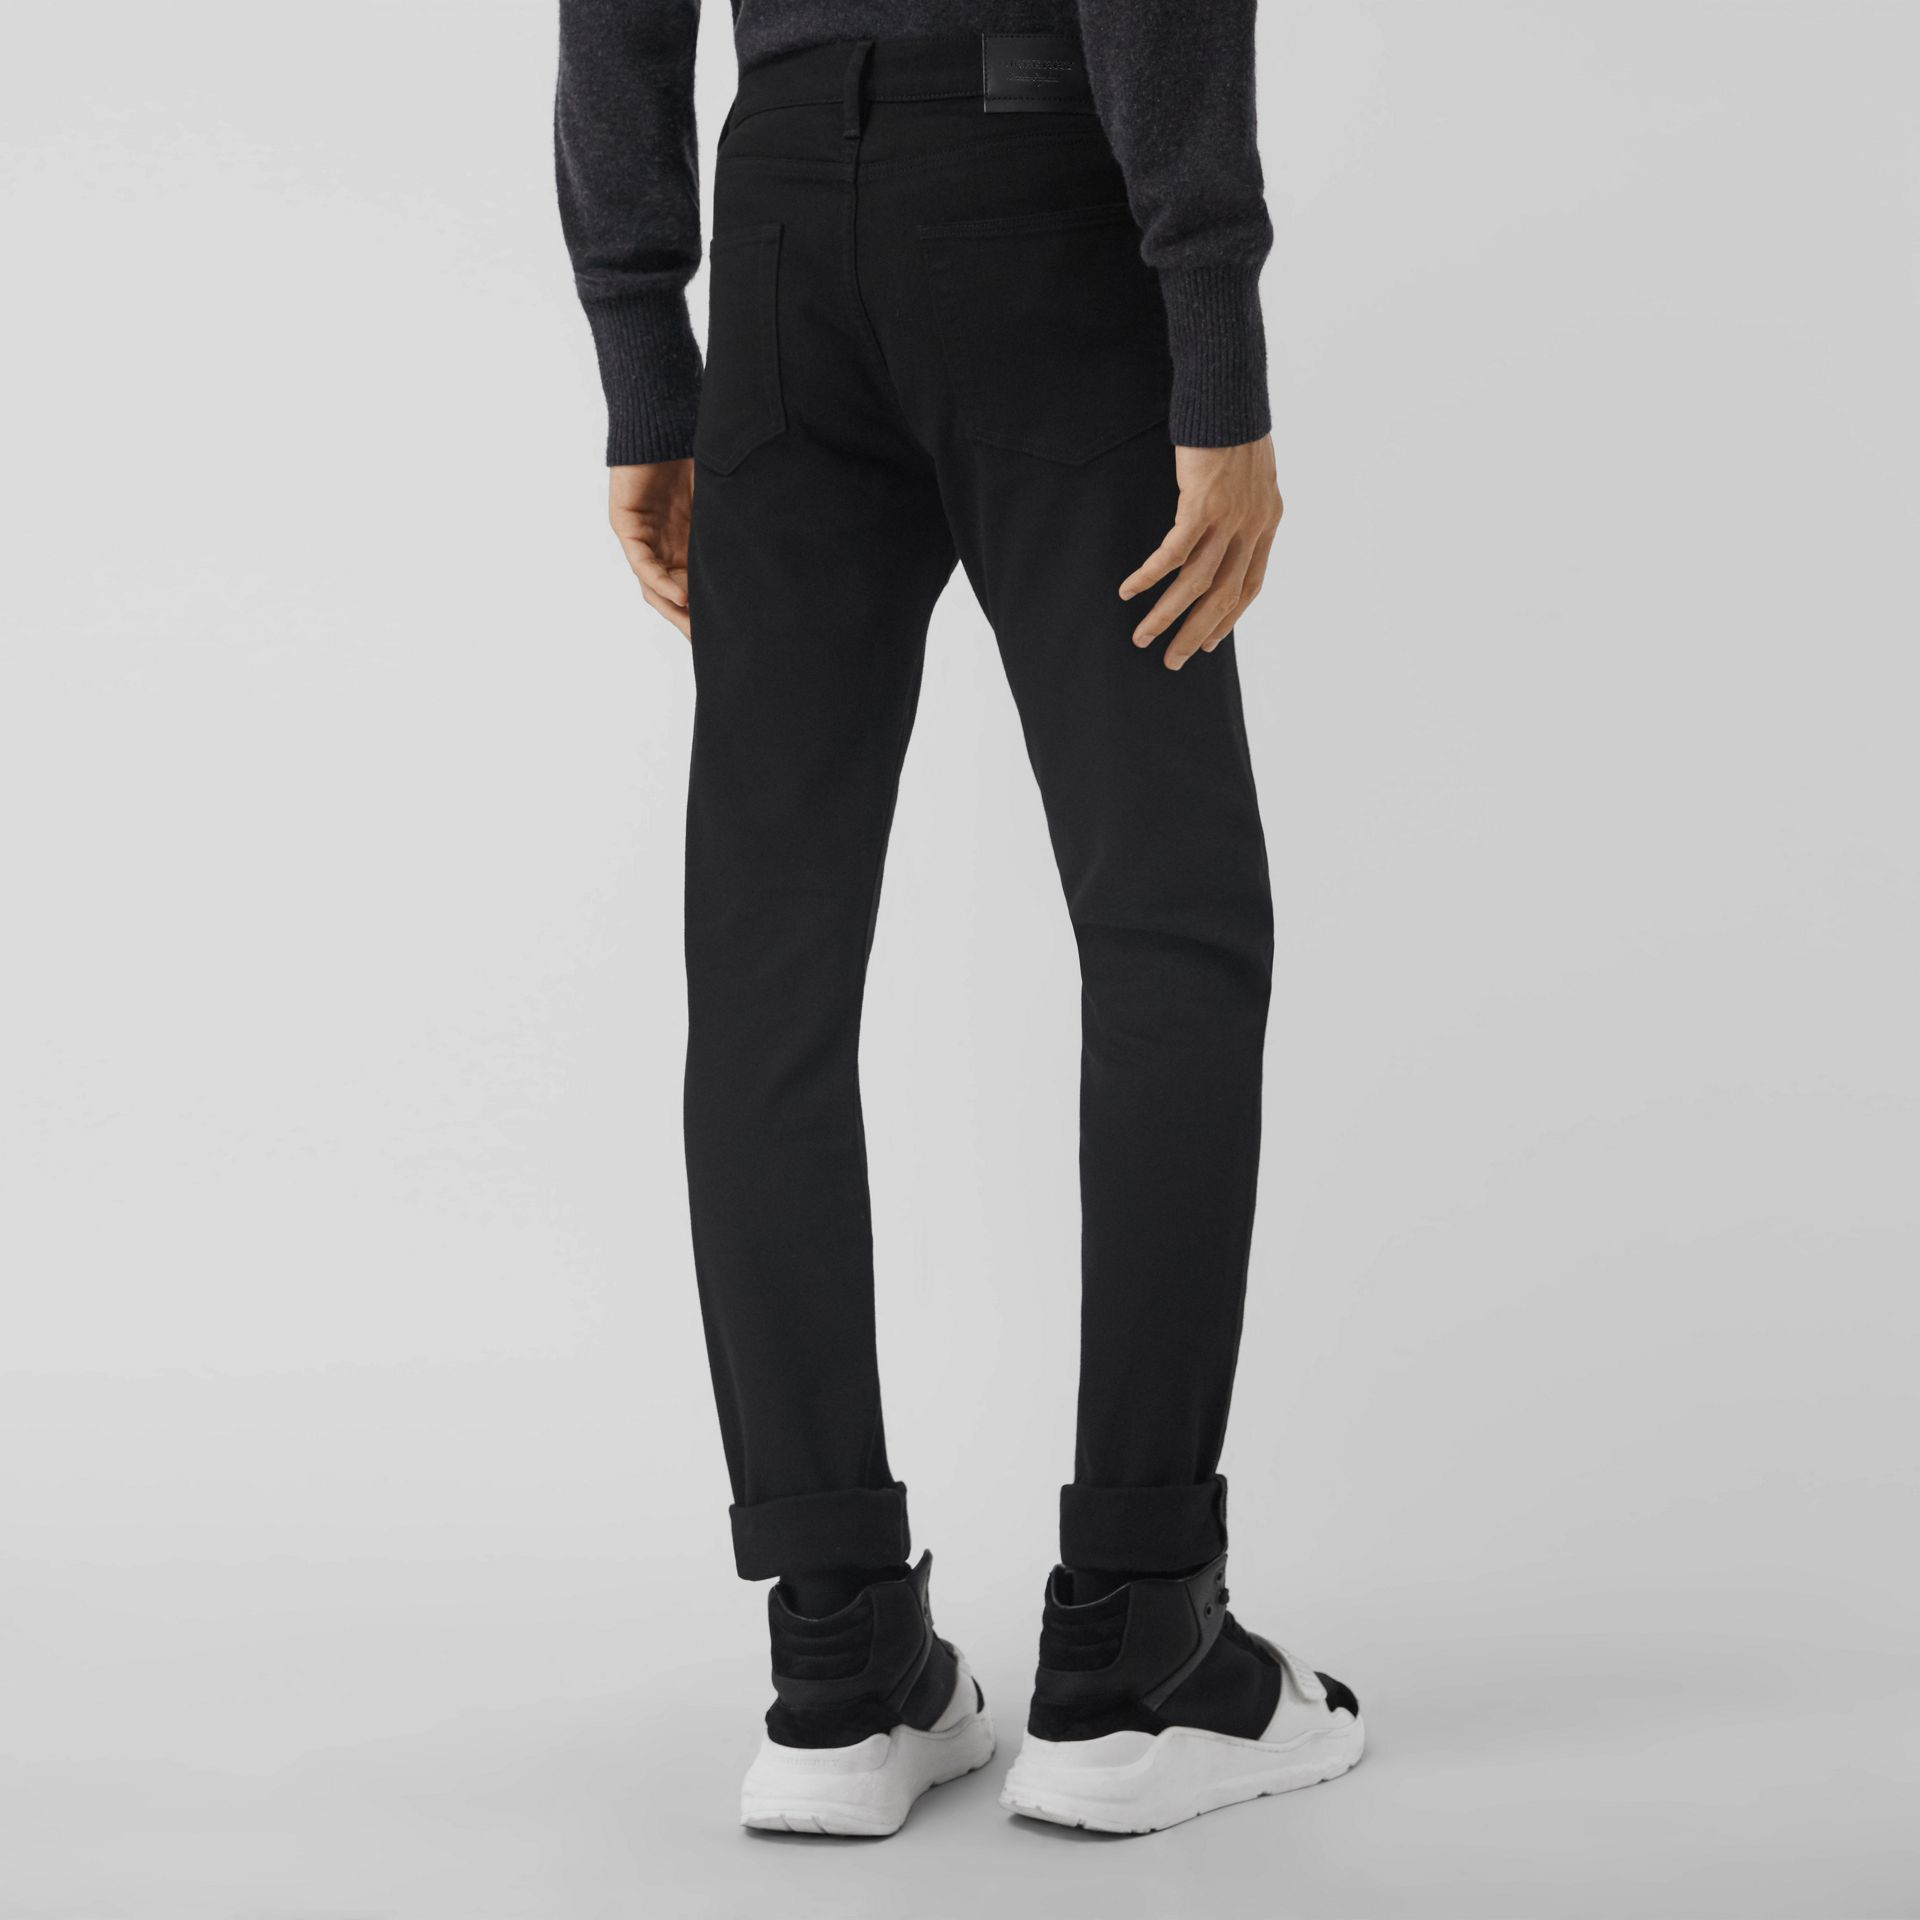 Jean denim extensible de coupe étroite (Noir) - Homme | Burberry Canada - photo de la galerie 2